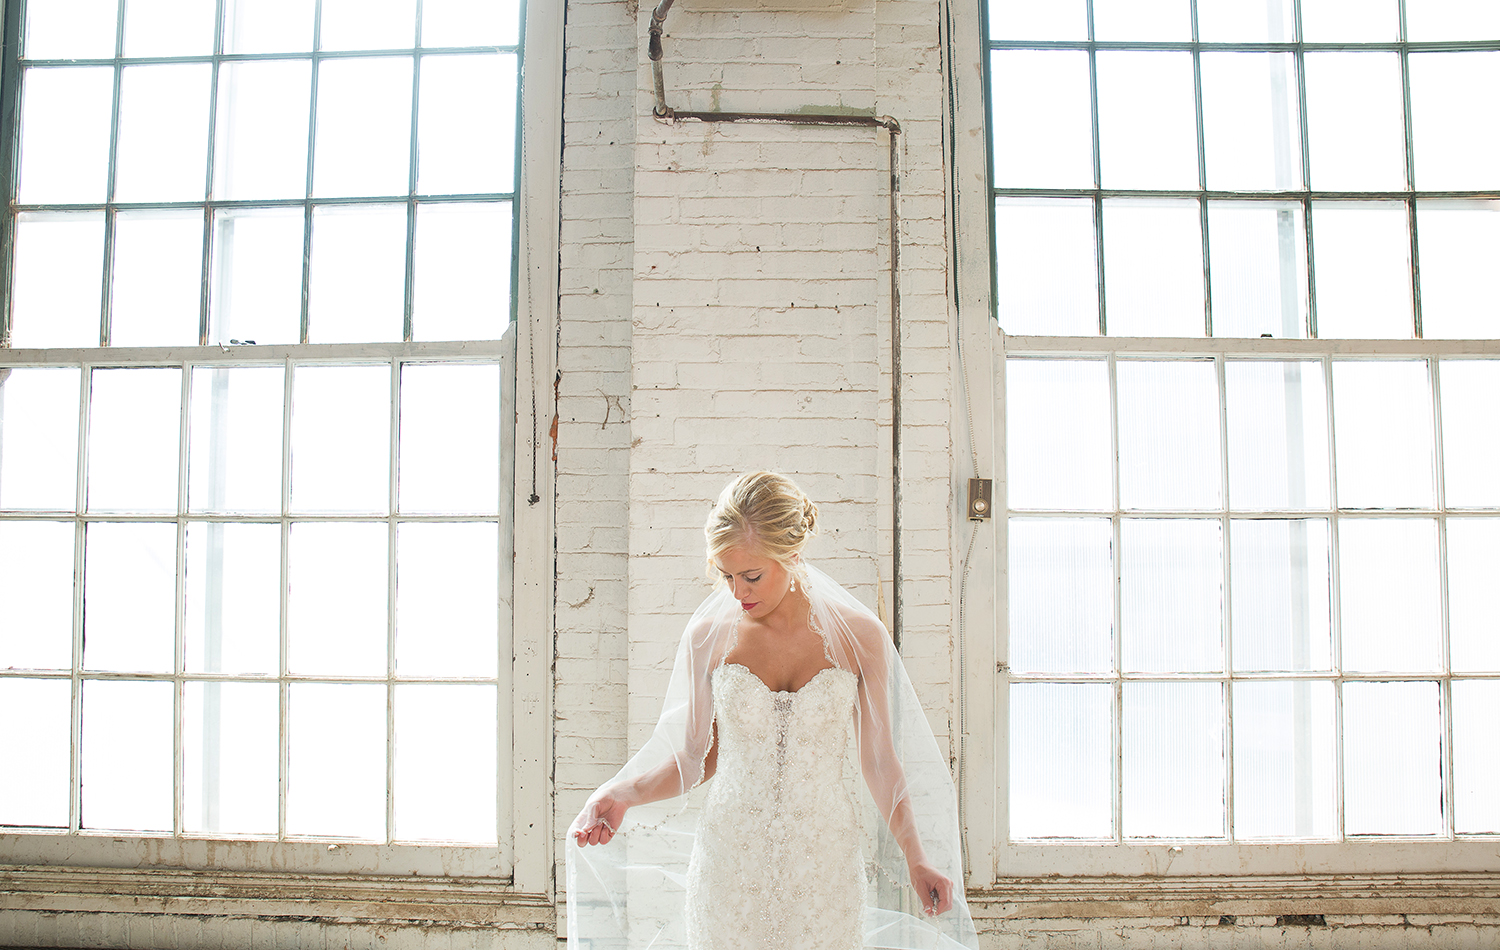 Dayton Ohio, modern bride, cathedral veil, warehouse wedding, modern wedding photography, storytelling photography